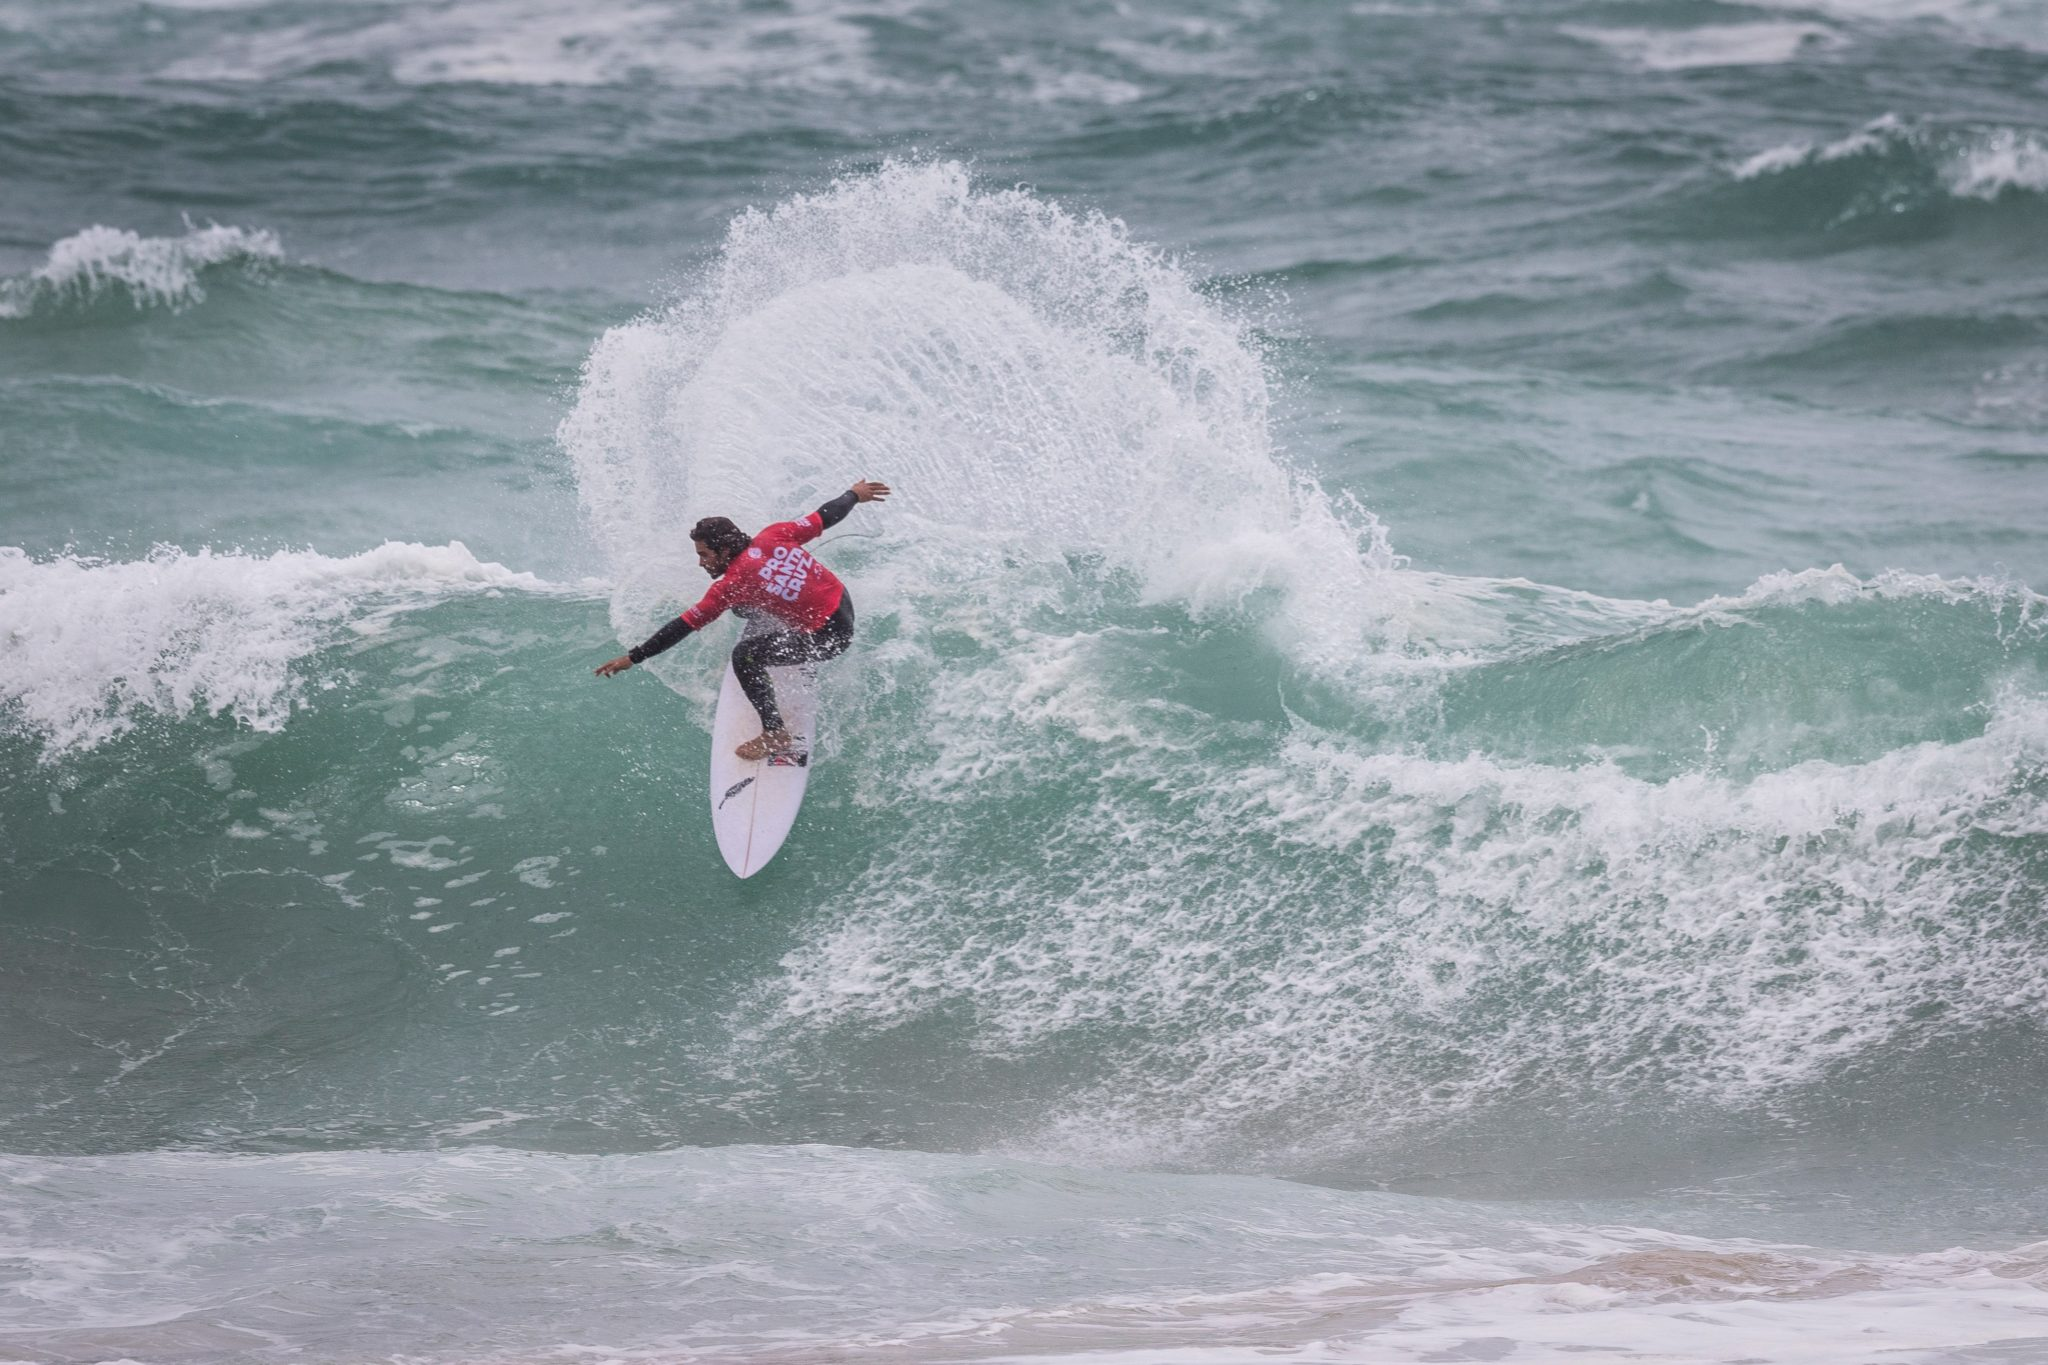 Marco Giorgi (URY) placed 1st in the final at Santa Cruz Pro 2017